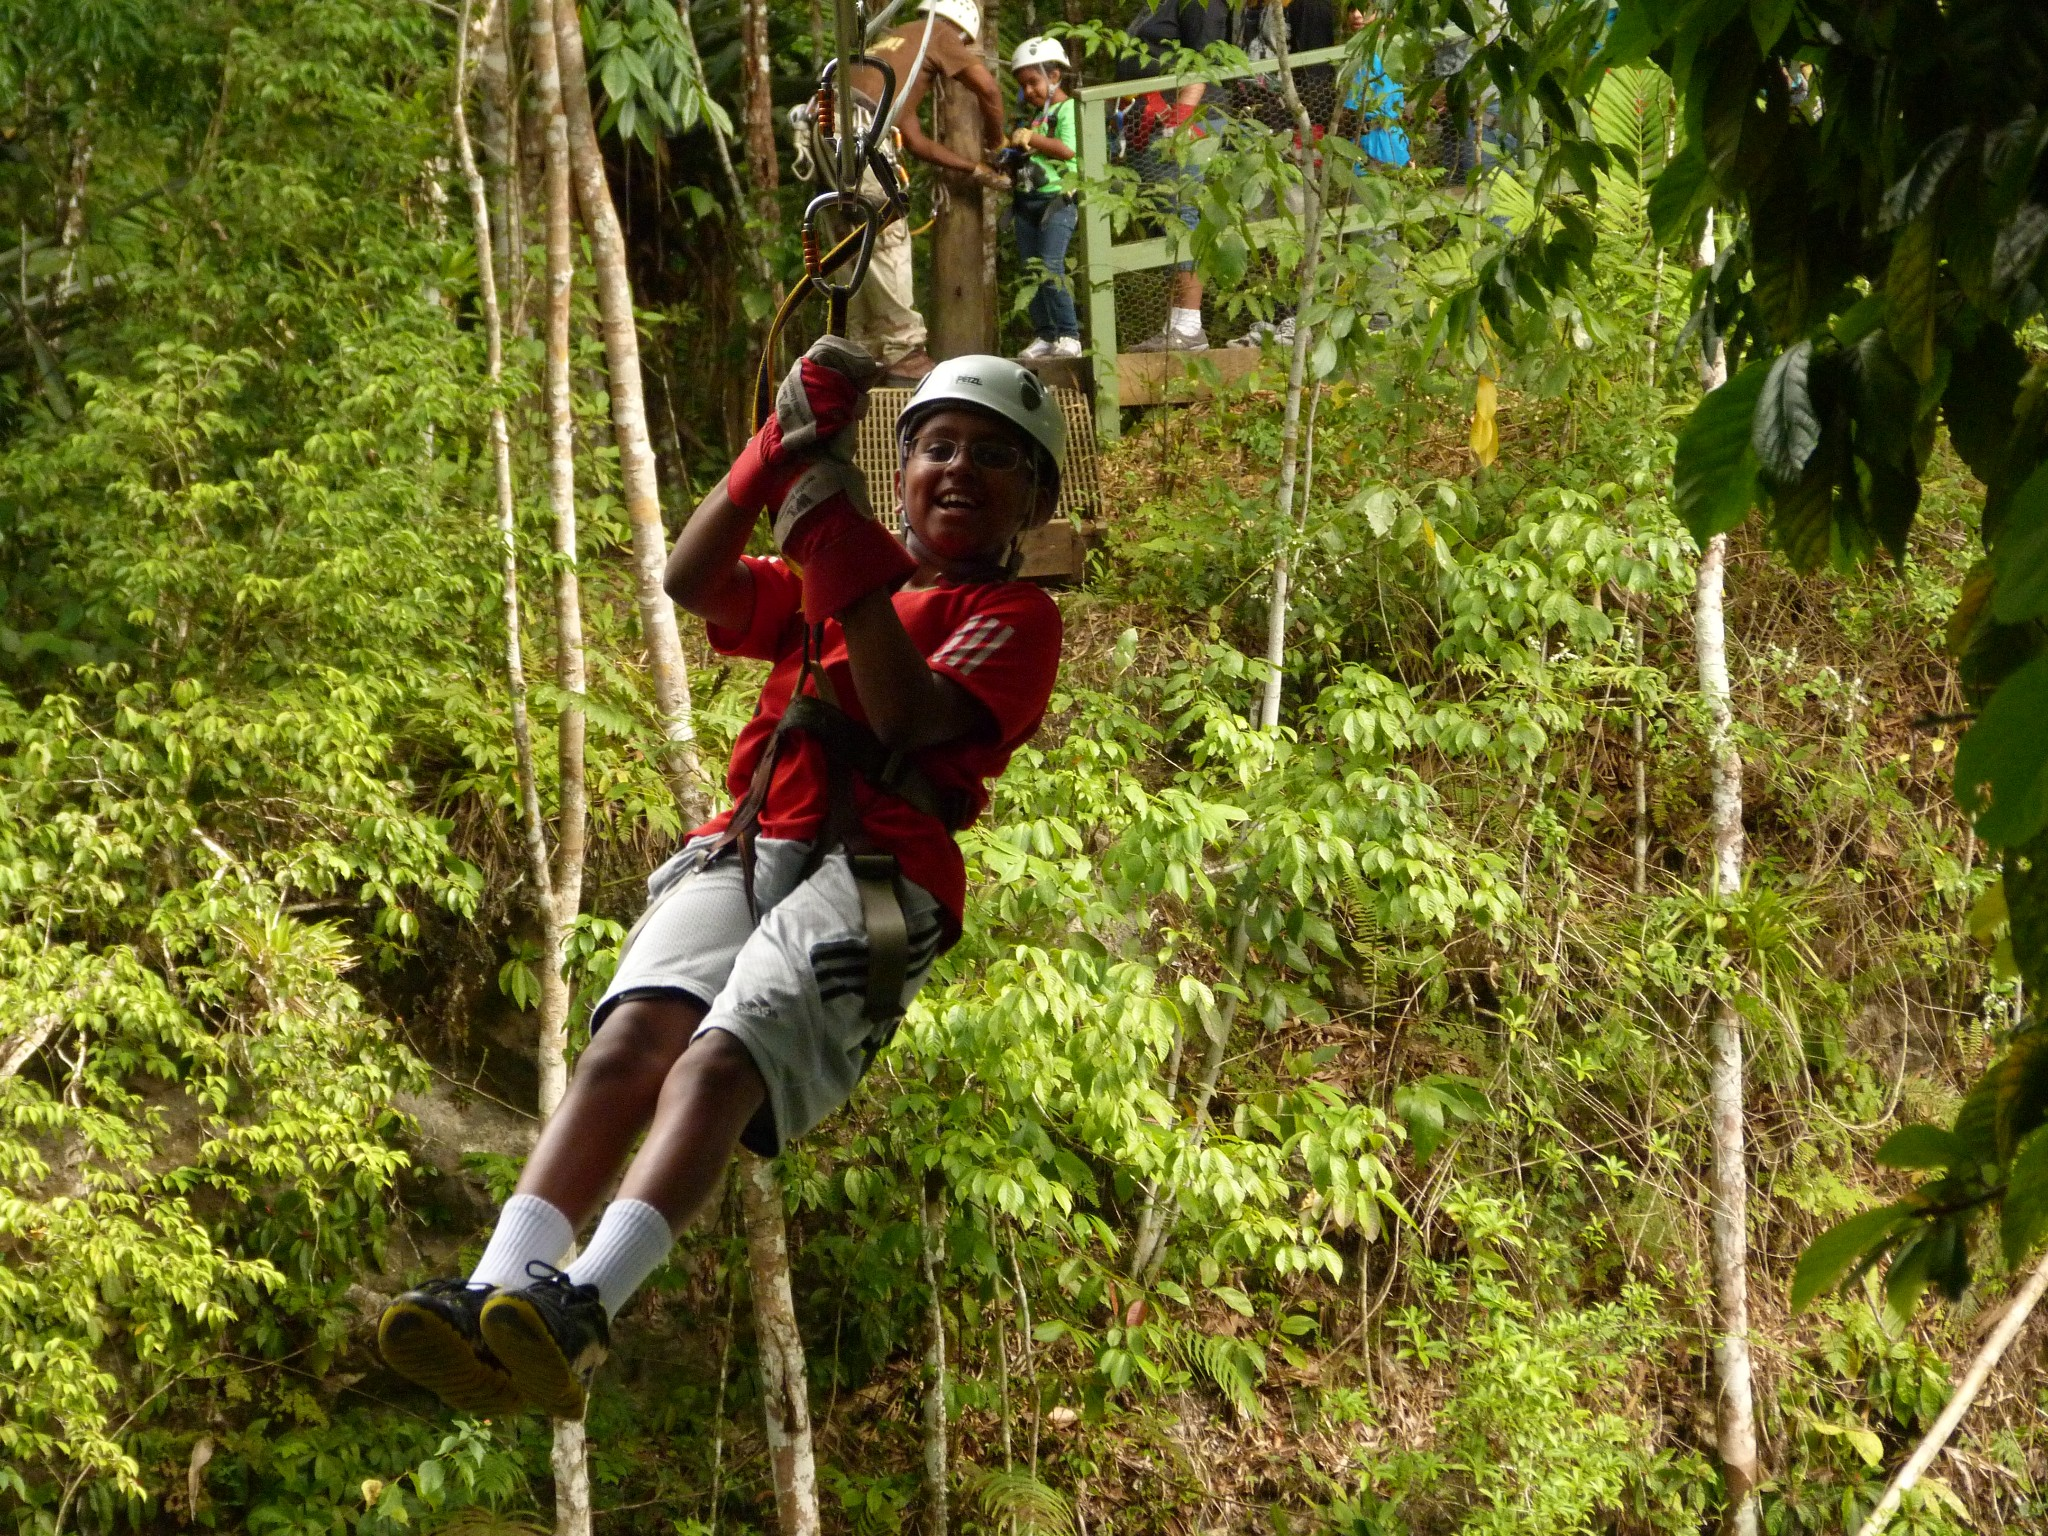 adventure in jungle essay Free essays on jungle trekking get help with your writing 1 through 30.